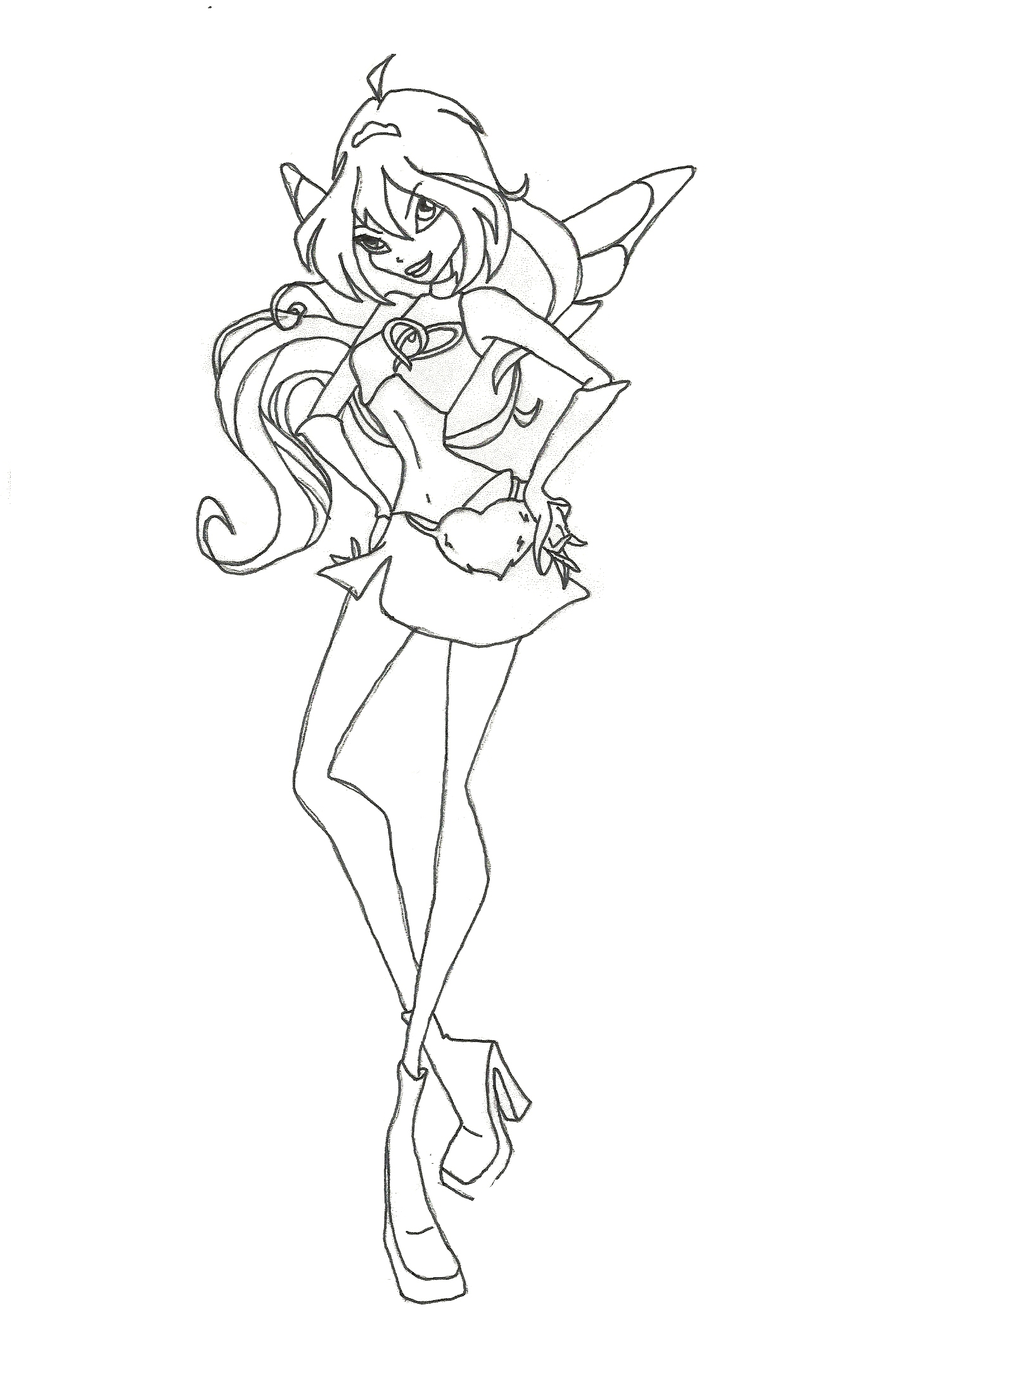 Winx Club Bloom Coloring Pages 1024 1397 Coloring Picture Animal And Car Also Nature Color Fairy Coloring Pages Art Drawings Sketches Simple Coloring Pages